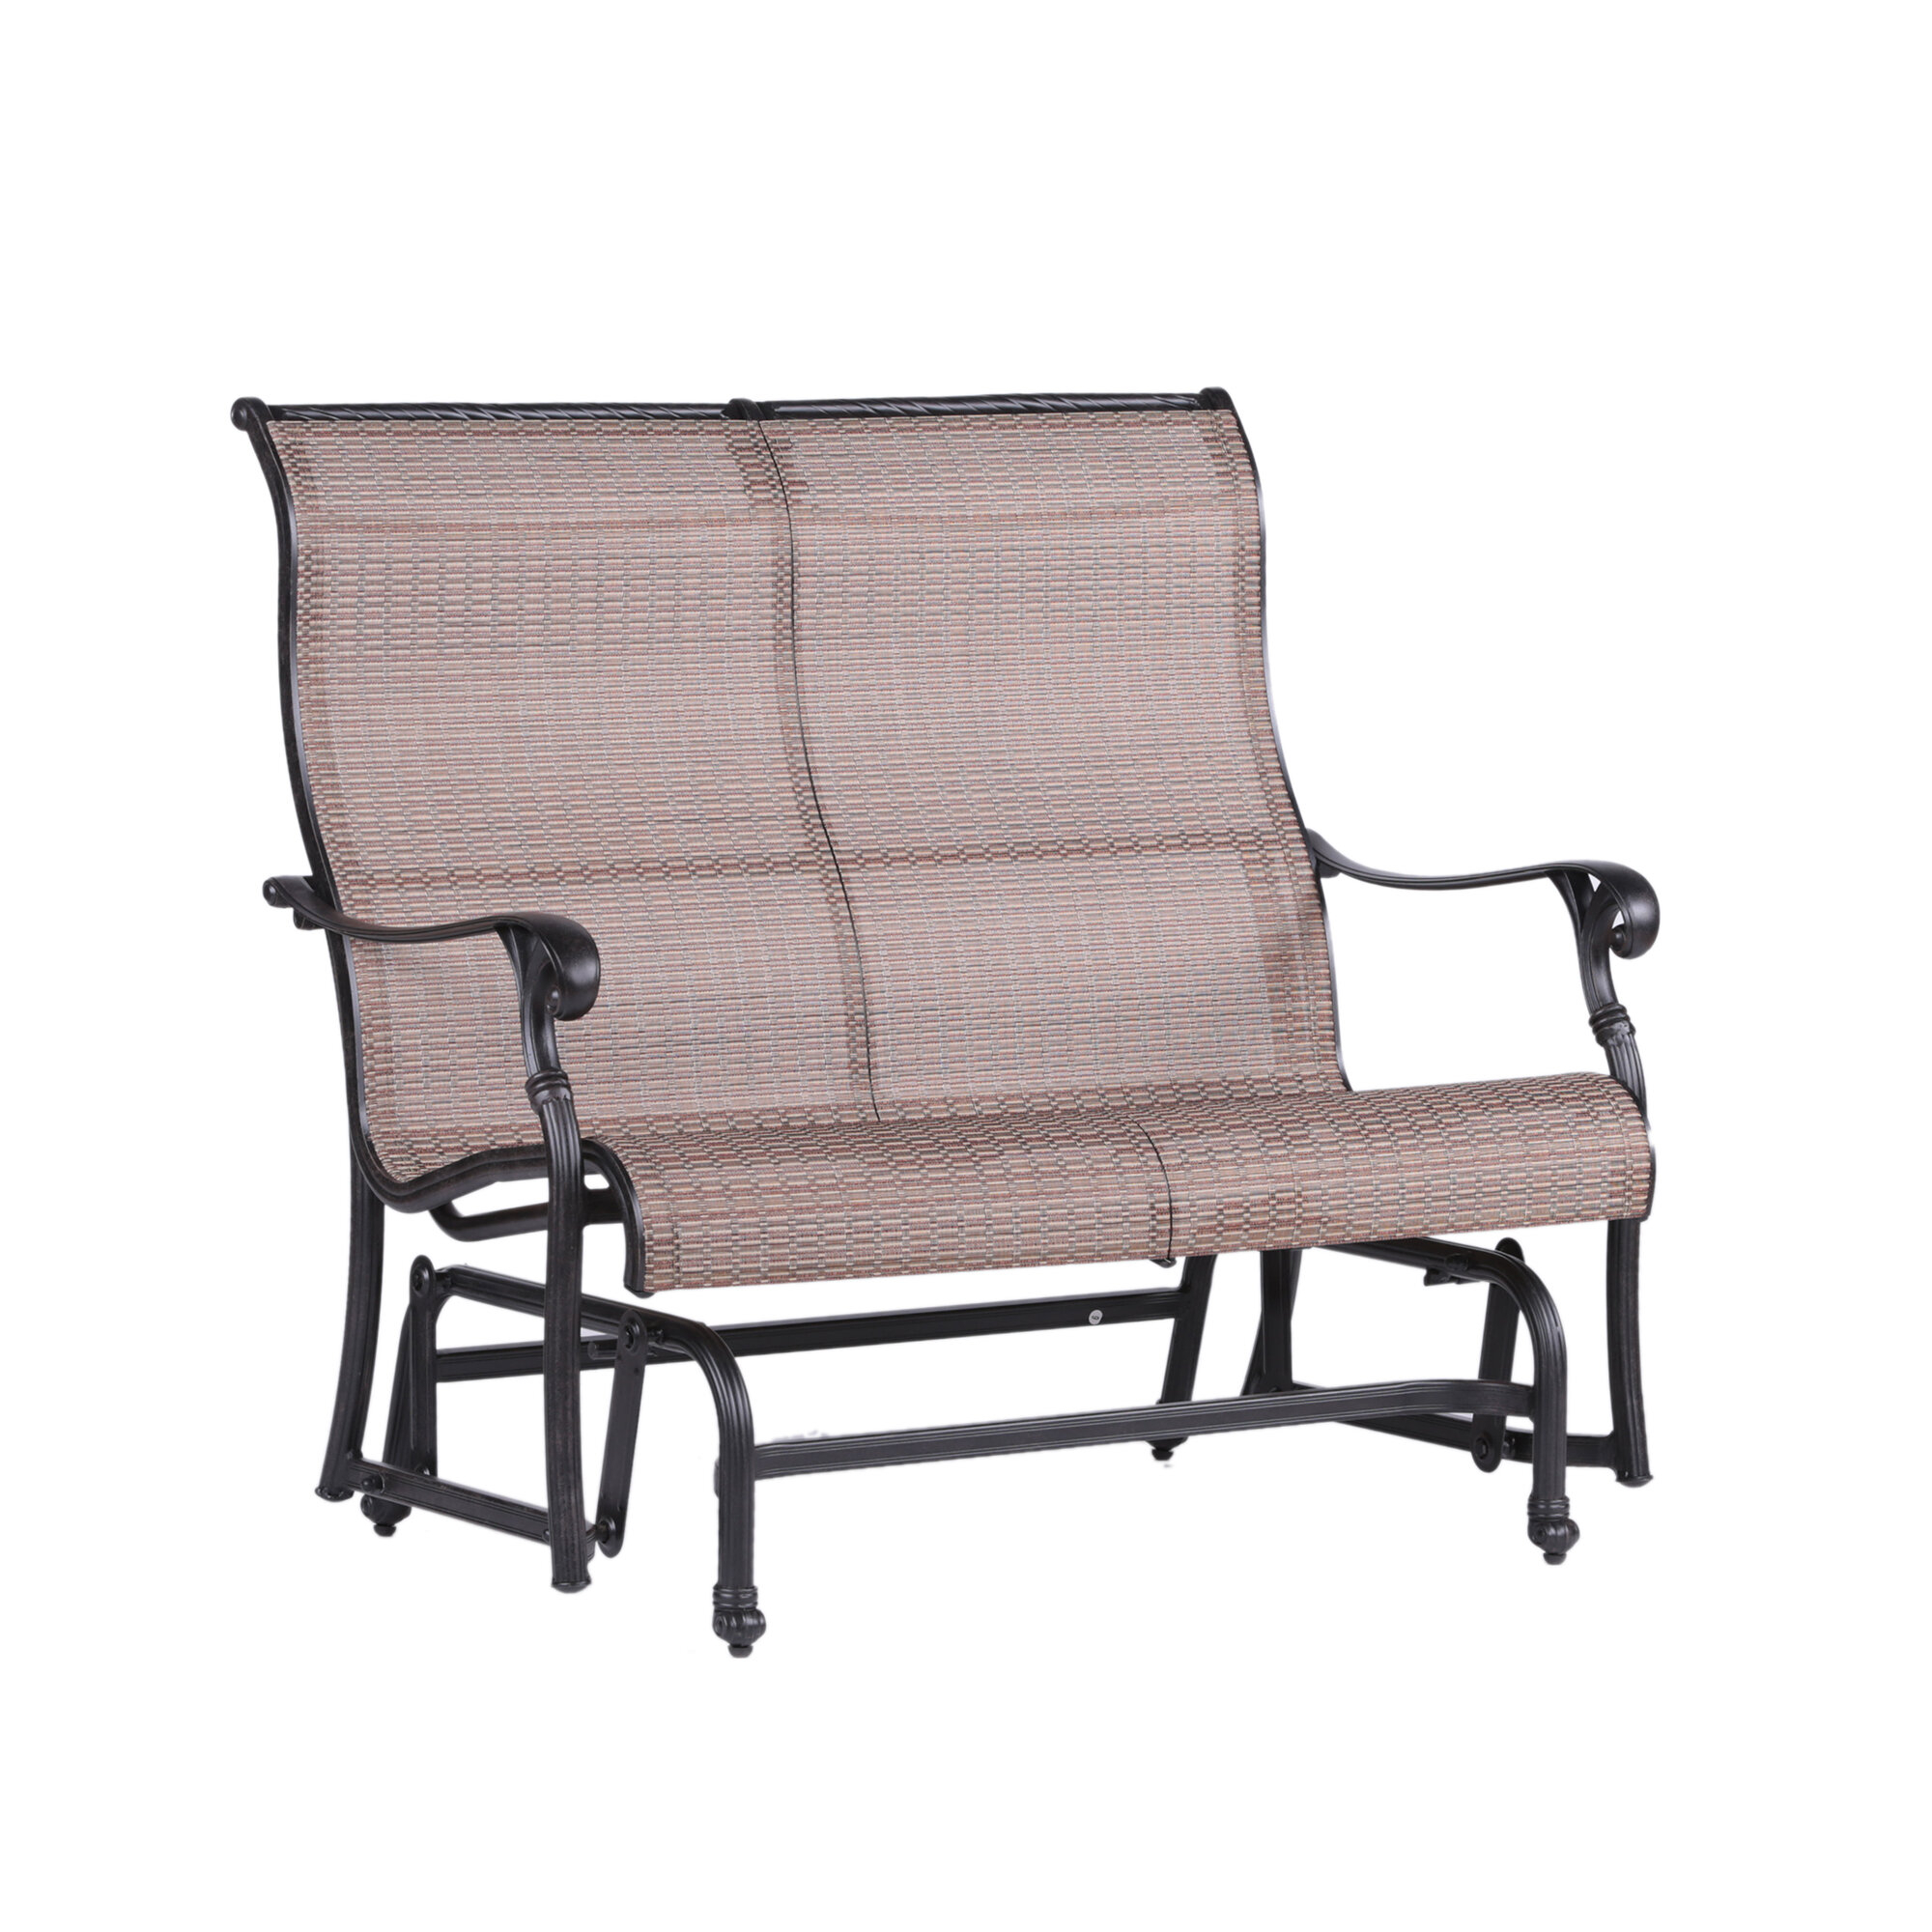 Germano Double Glider Bench With Cushion Regarding Glider Benches With Cushion (Image 15 of 25)